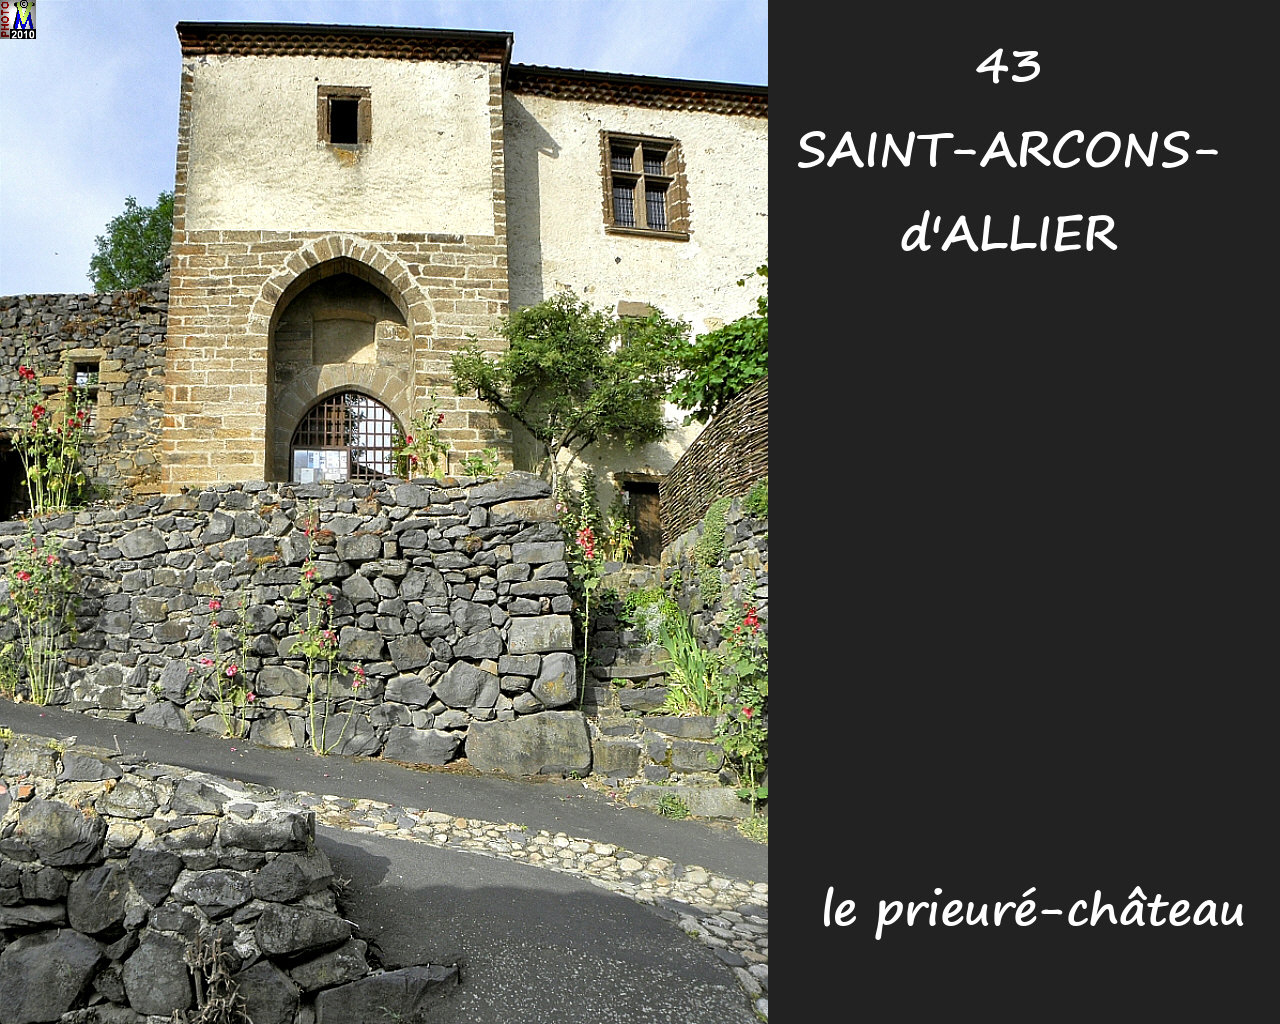 43StARCONS-ALLIER_chateau_104.jpg